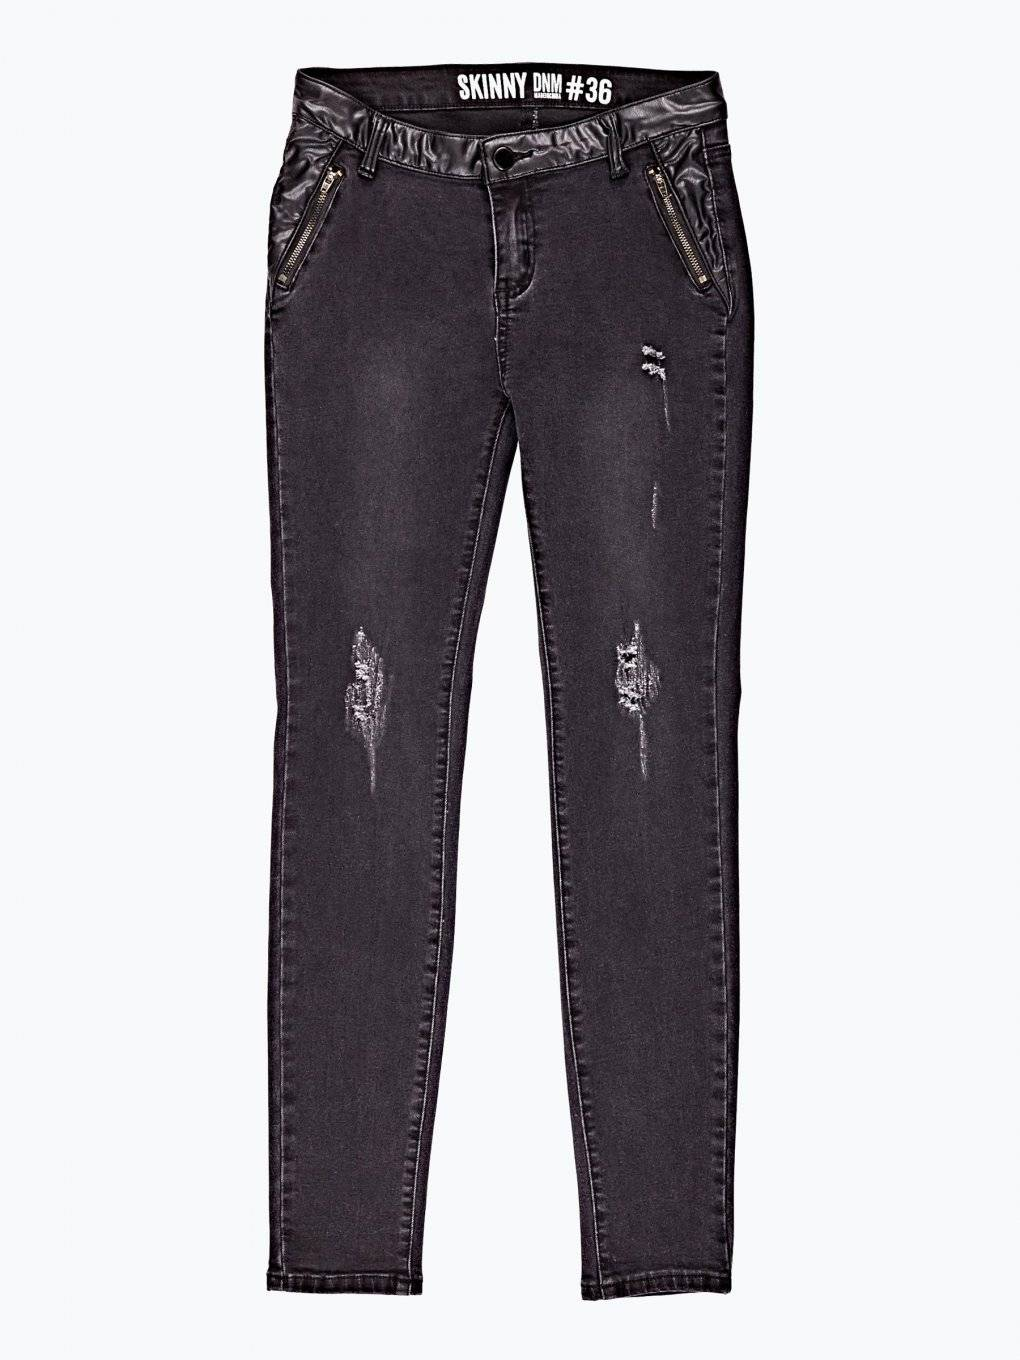 Combined distressed skinny jeans in black wash